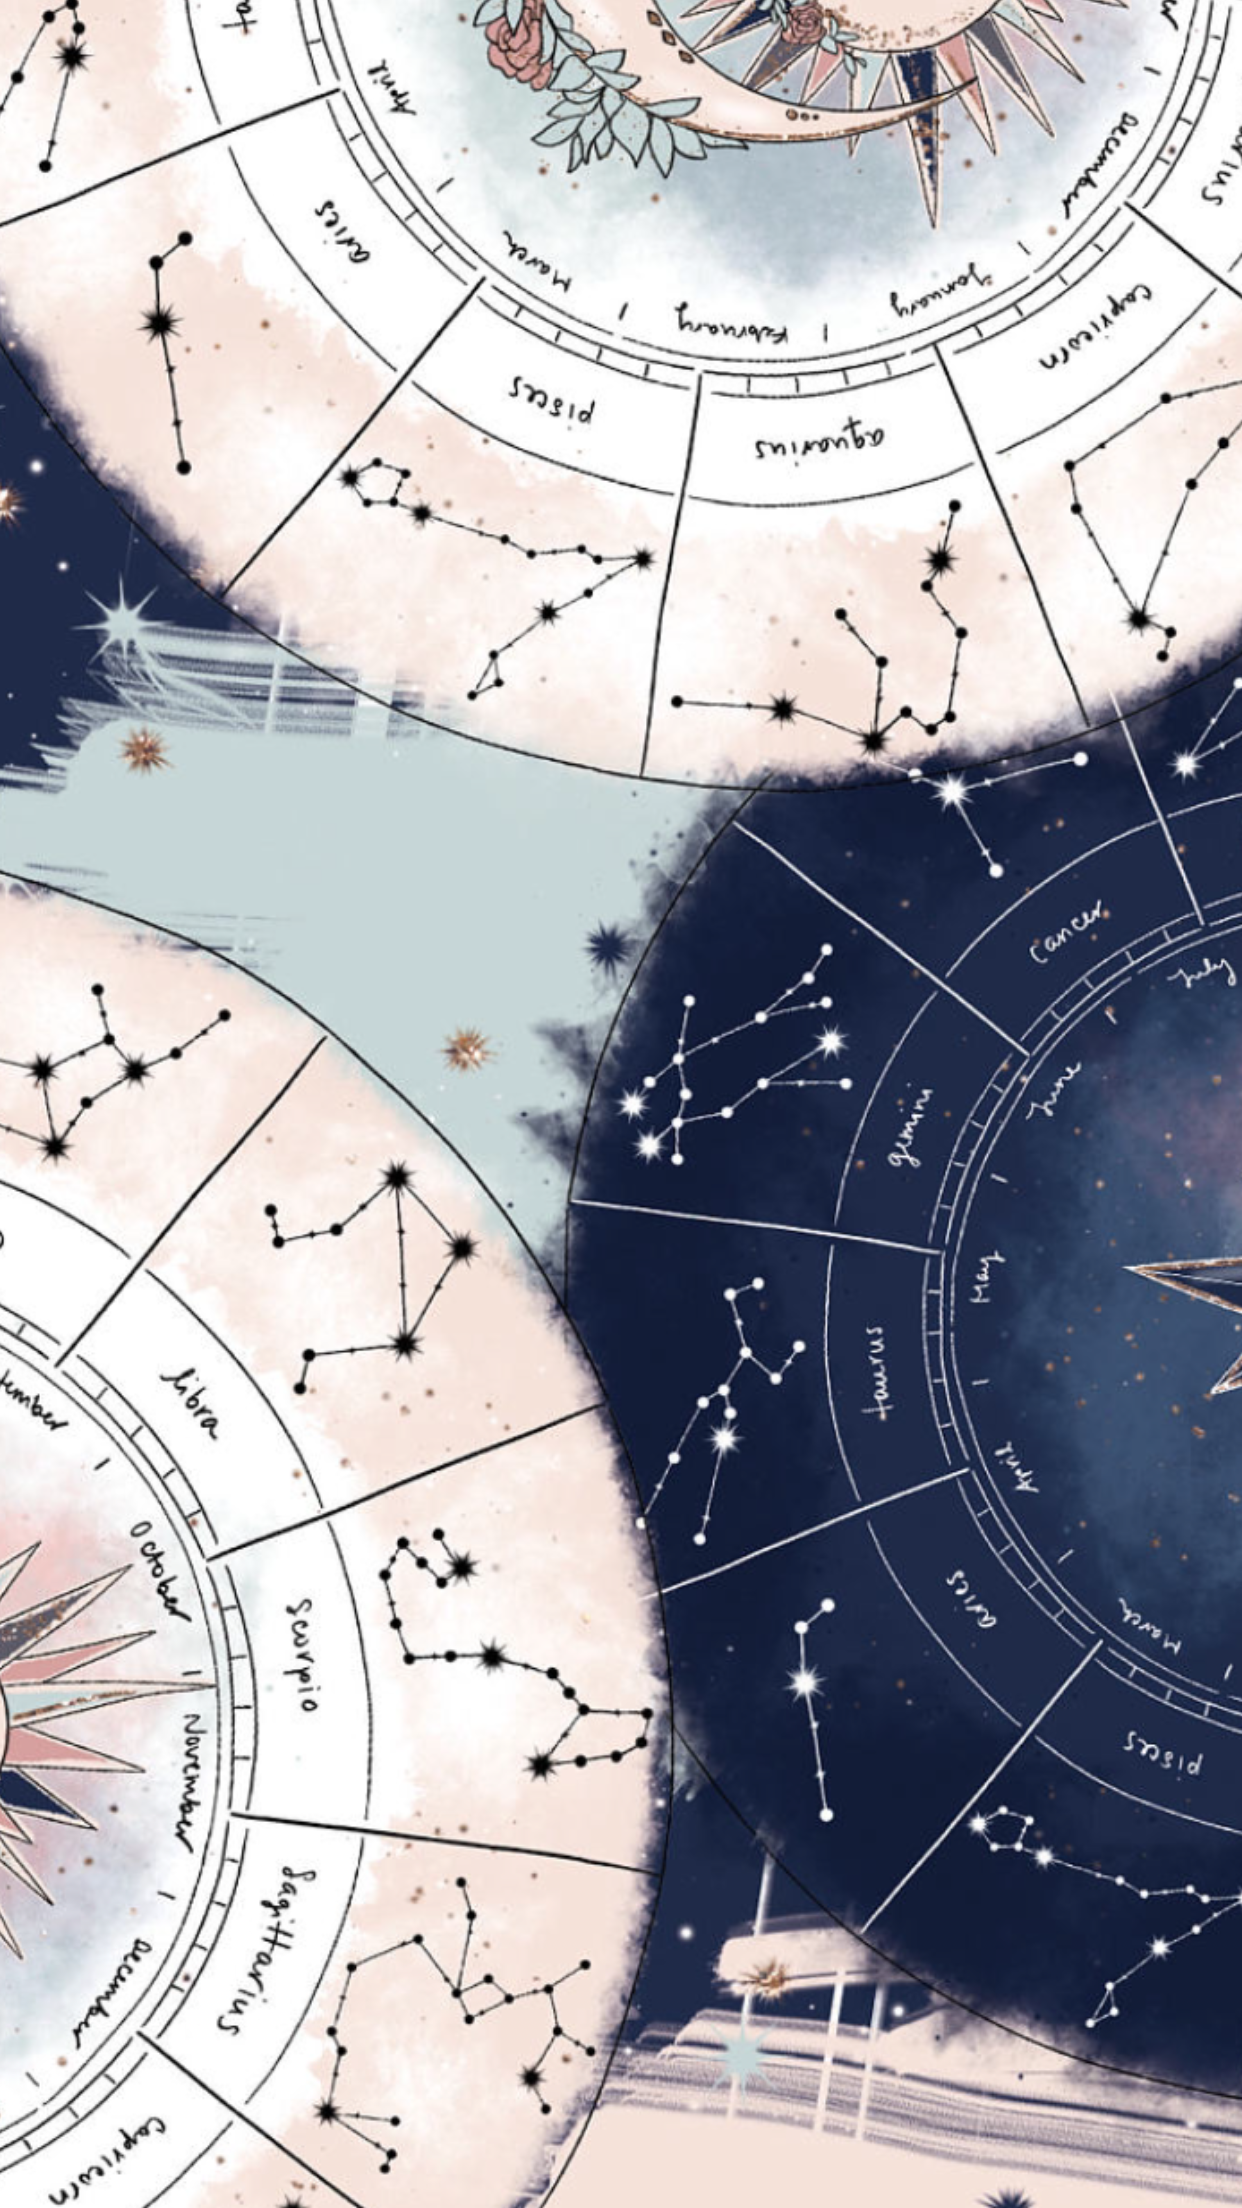 Dark Blue And Pastel Pink Astrology Chart Wallpaper Pastel Wallpaper Aesthetic Wallpapers Art Wallpaper